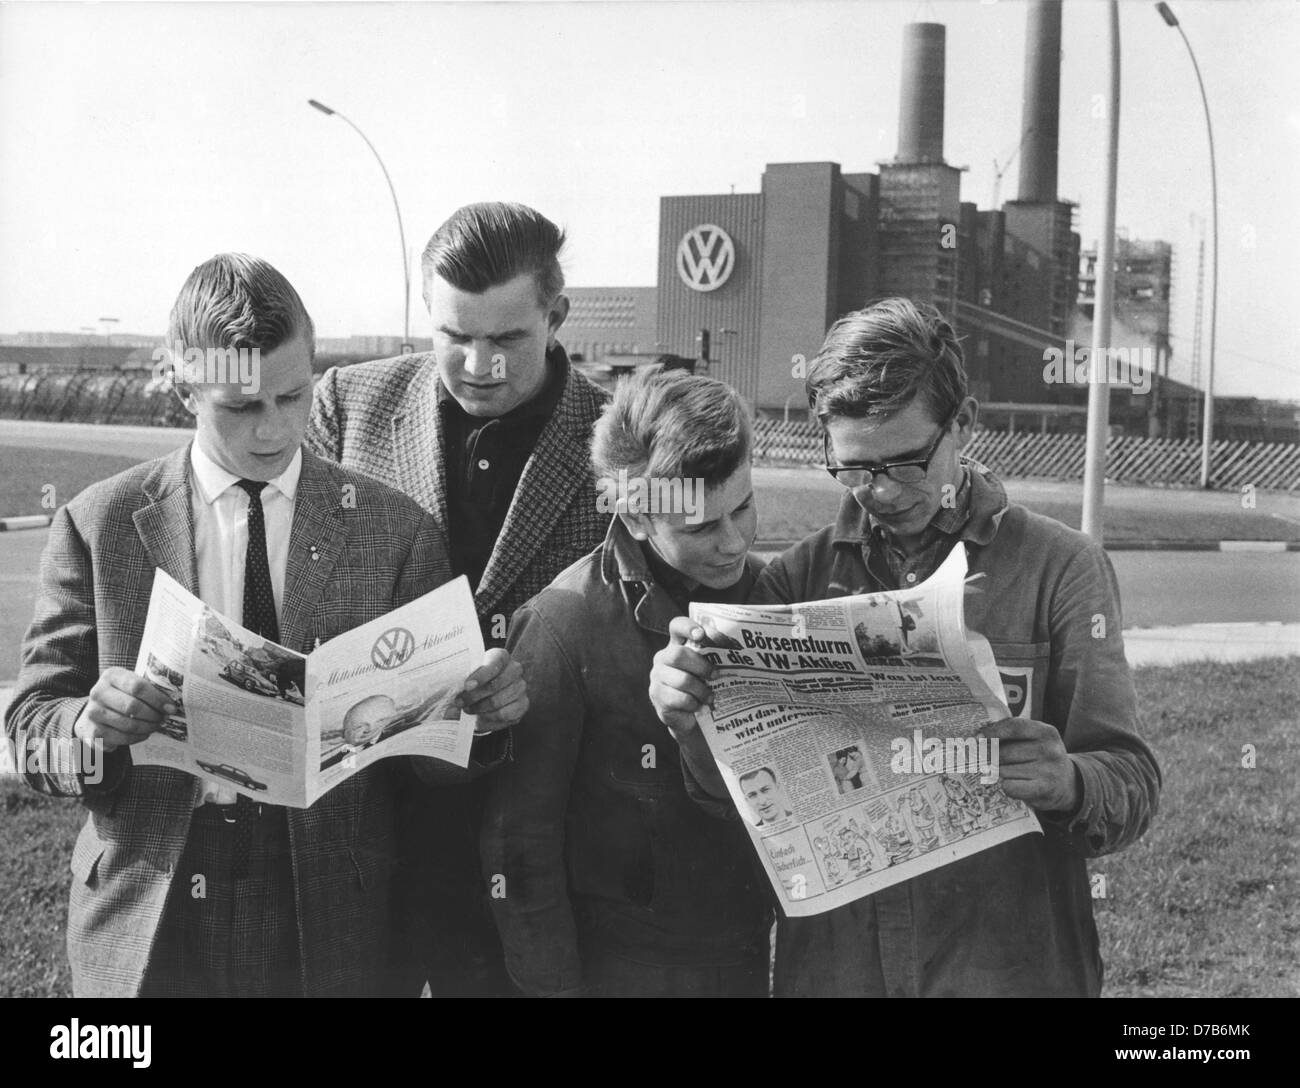 VW workers read a newspaper for VW shareholders on the 11th of April in 1961. - Stock Image